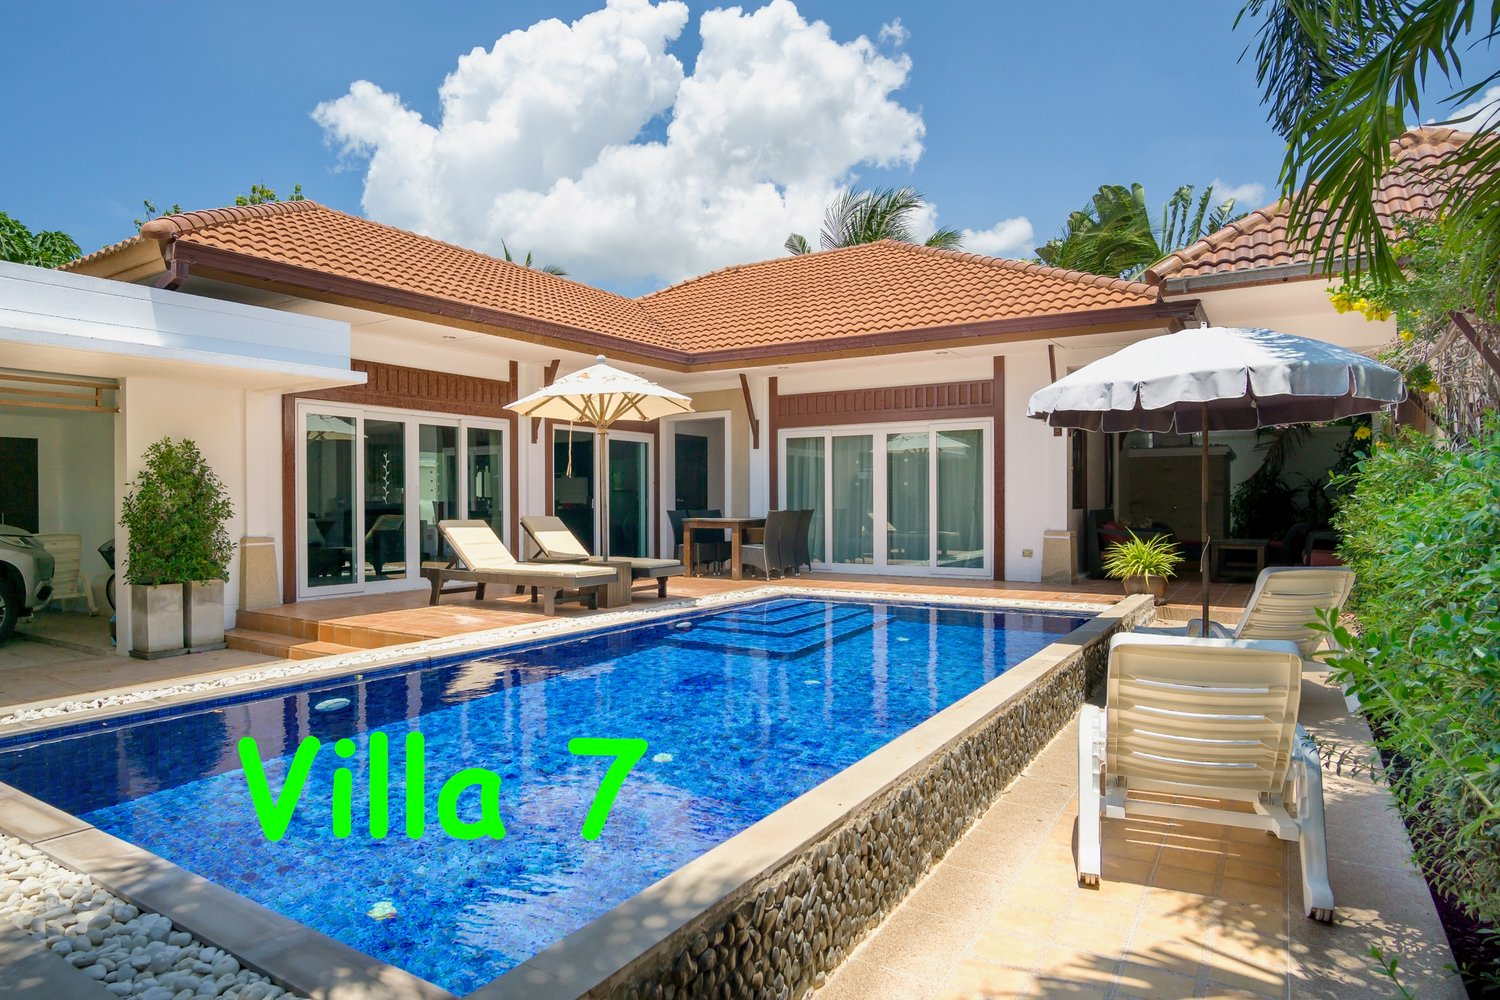 Basuba Pool Villas, no. 7, 3 bedrooms